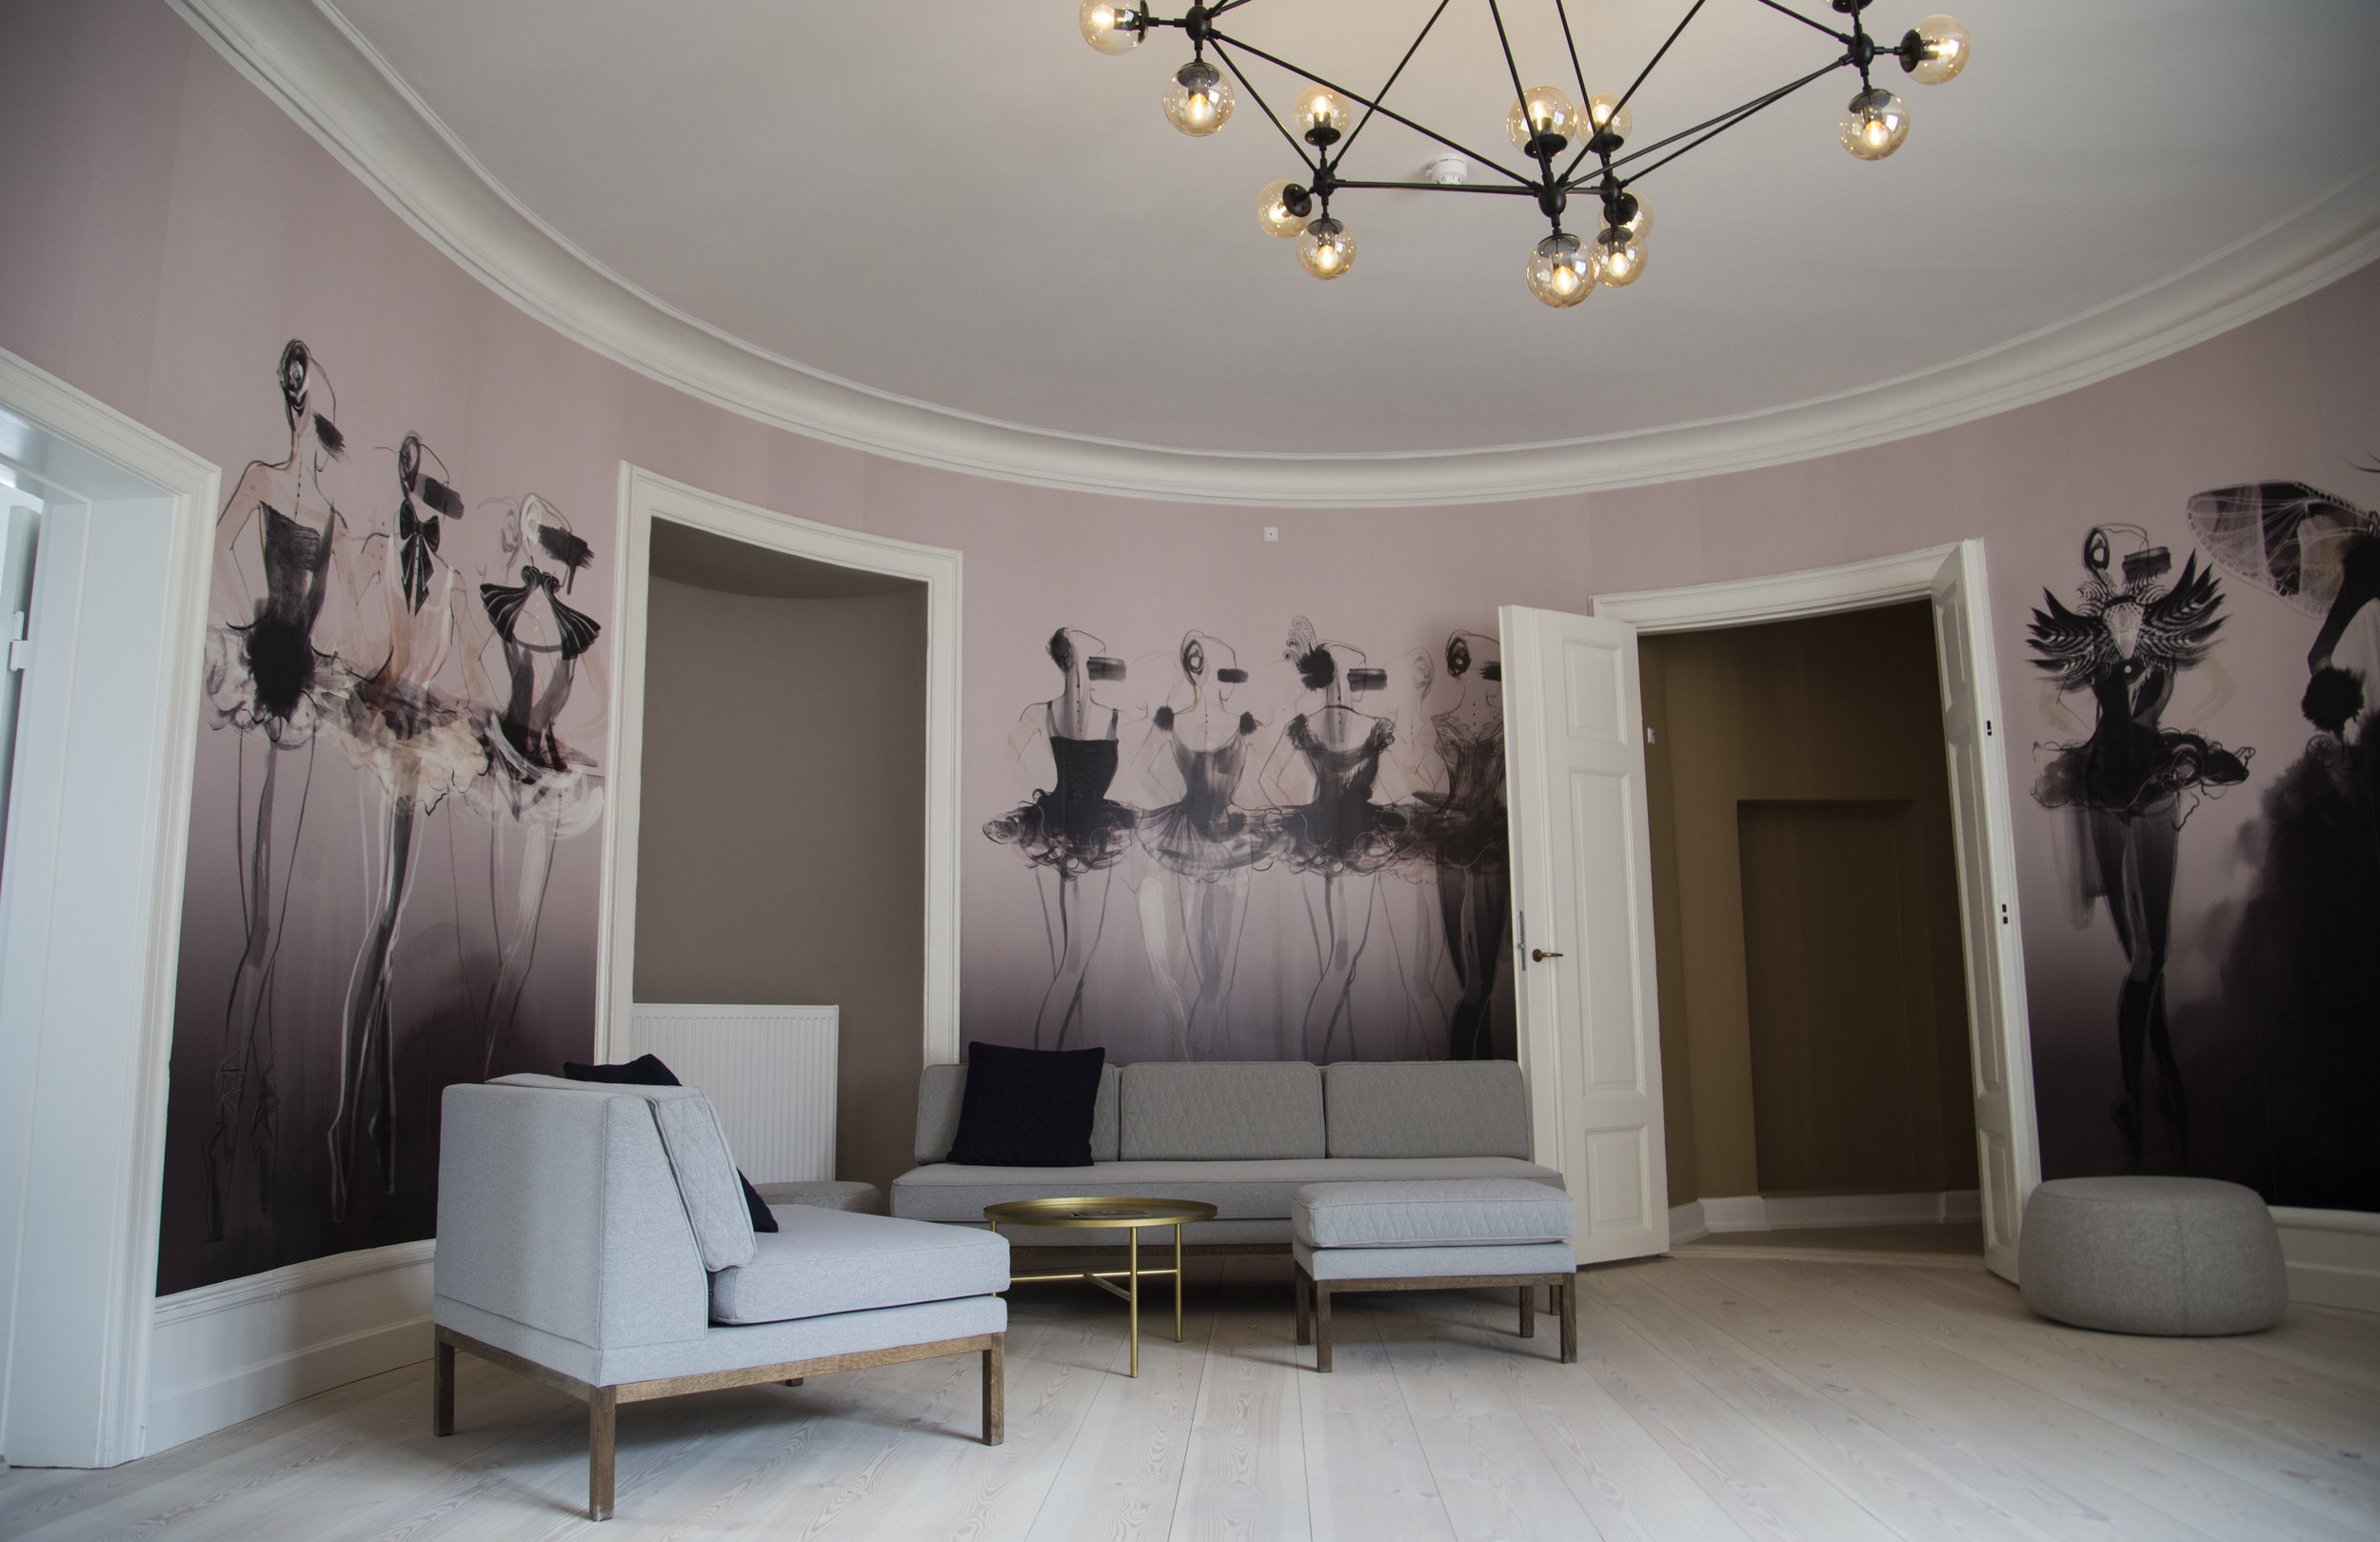 Wallpaper made by illustrator Mette Boesgaard and MAKWäRK, with references to the Royal Theater next door